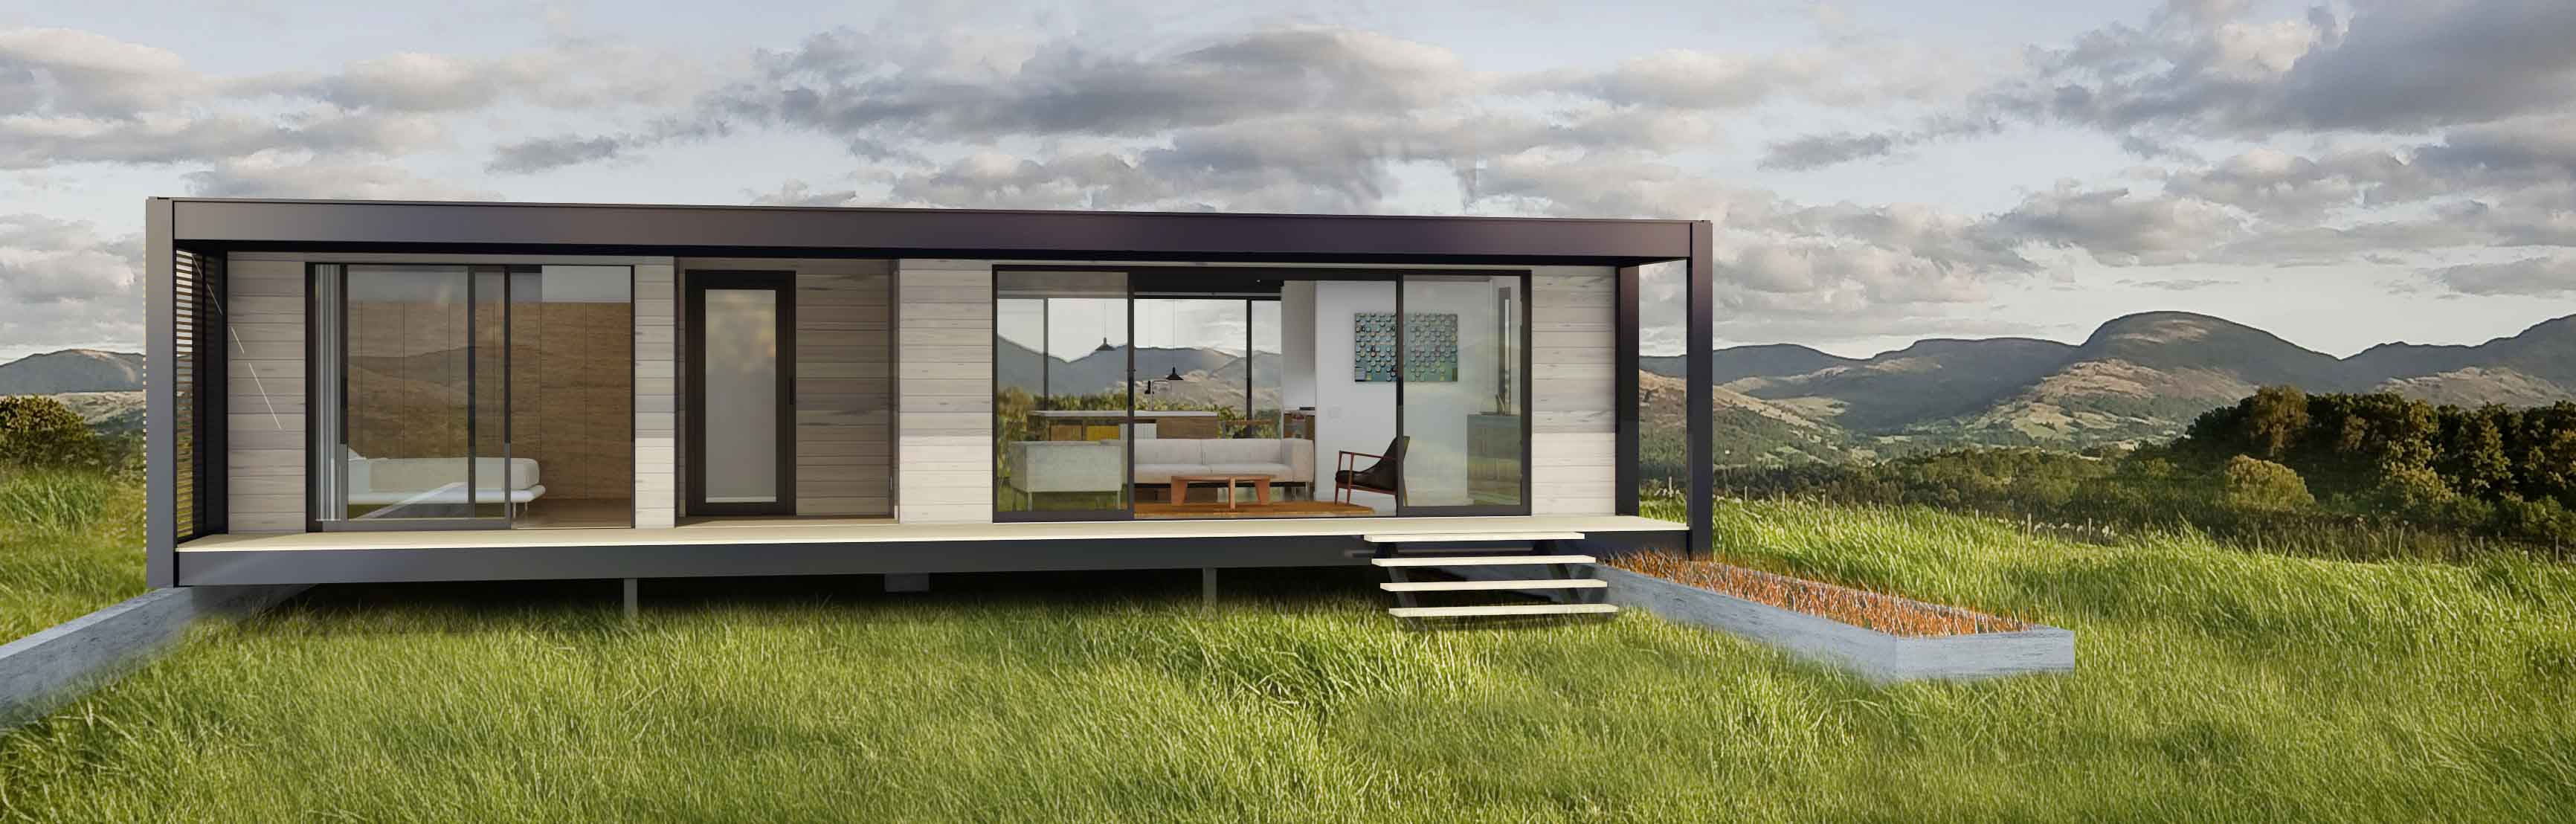 Superbe Prefab Container Homes